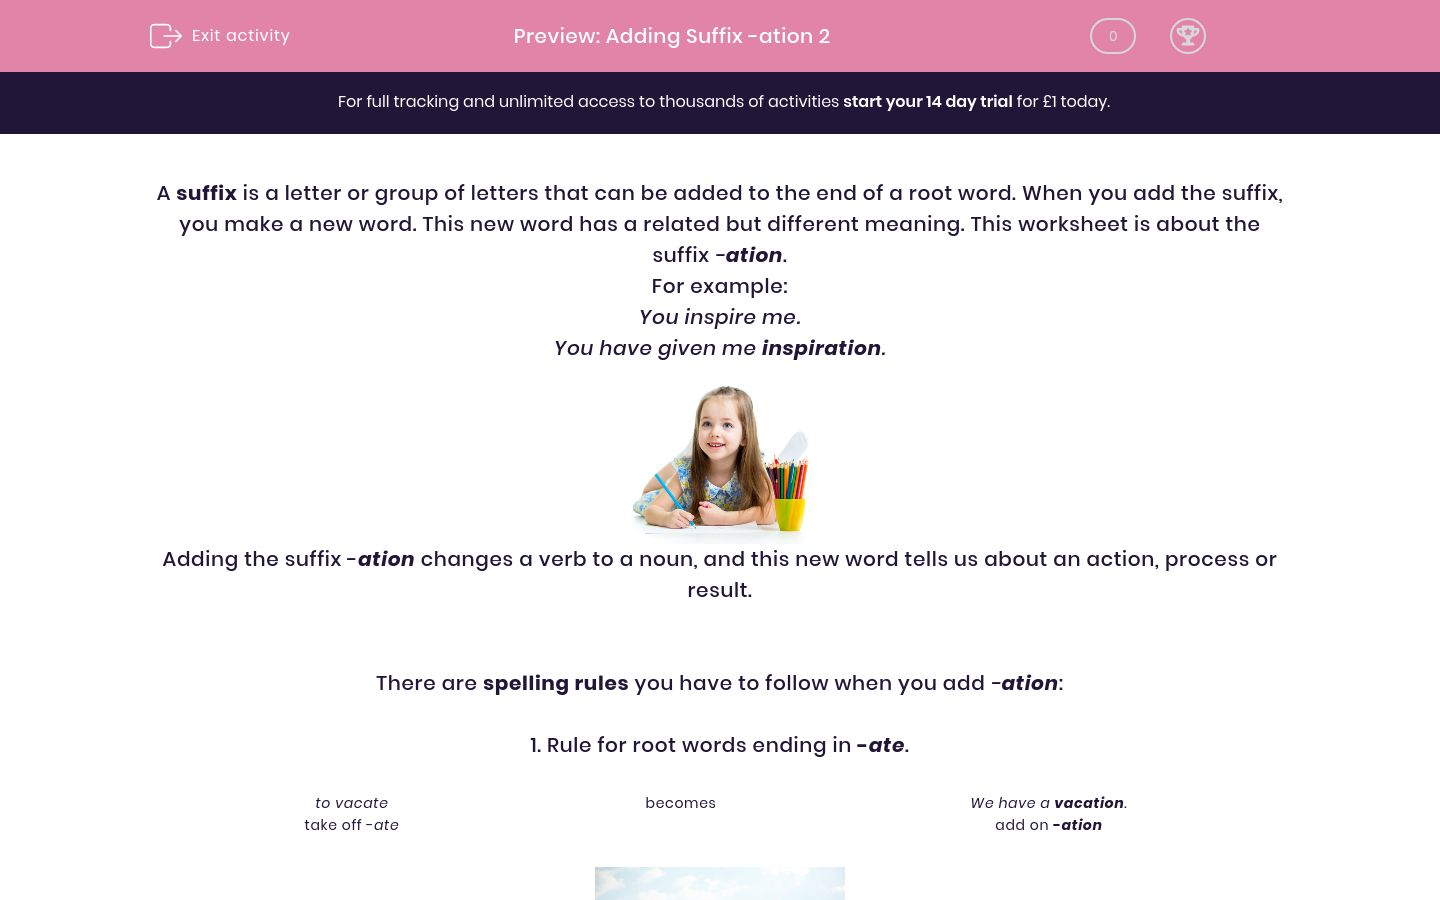 'Adding Suffix -ation 2' worksheet